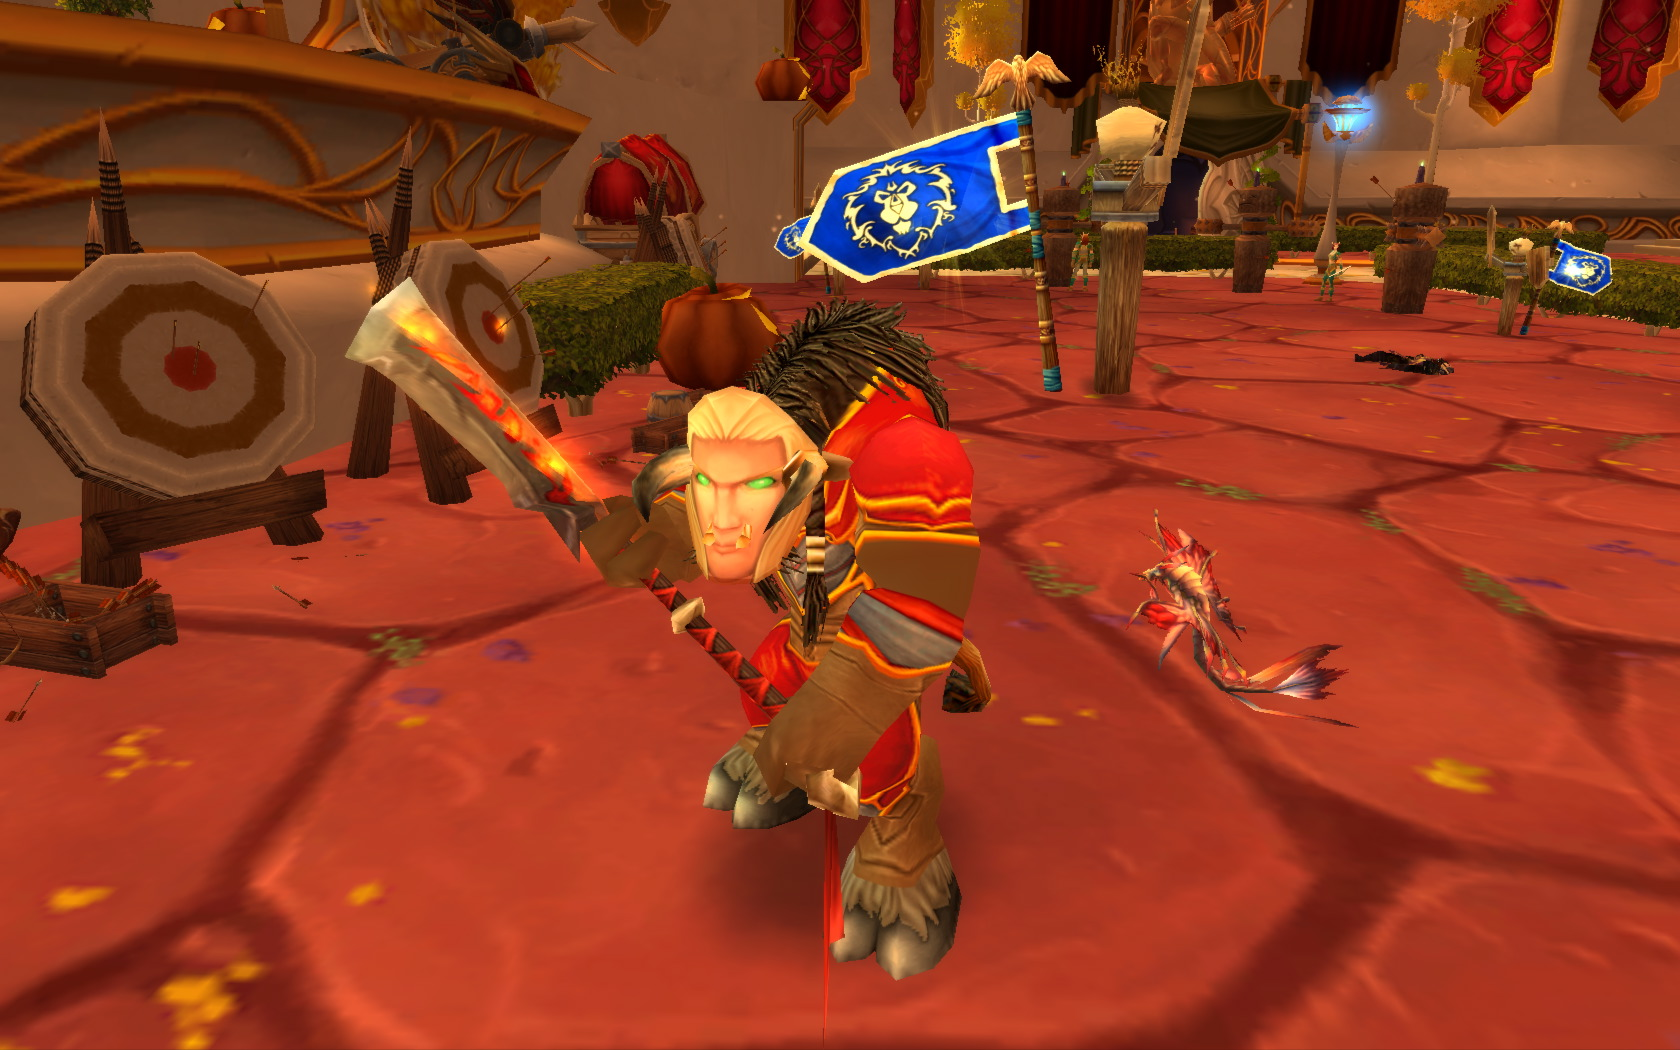 Tauren railing a blood elf softcore porn star